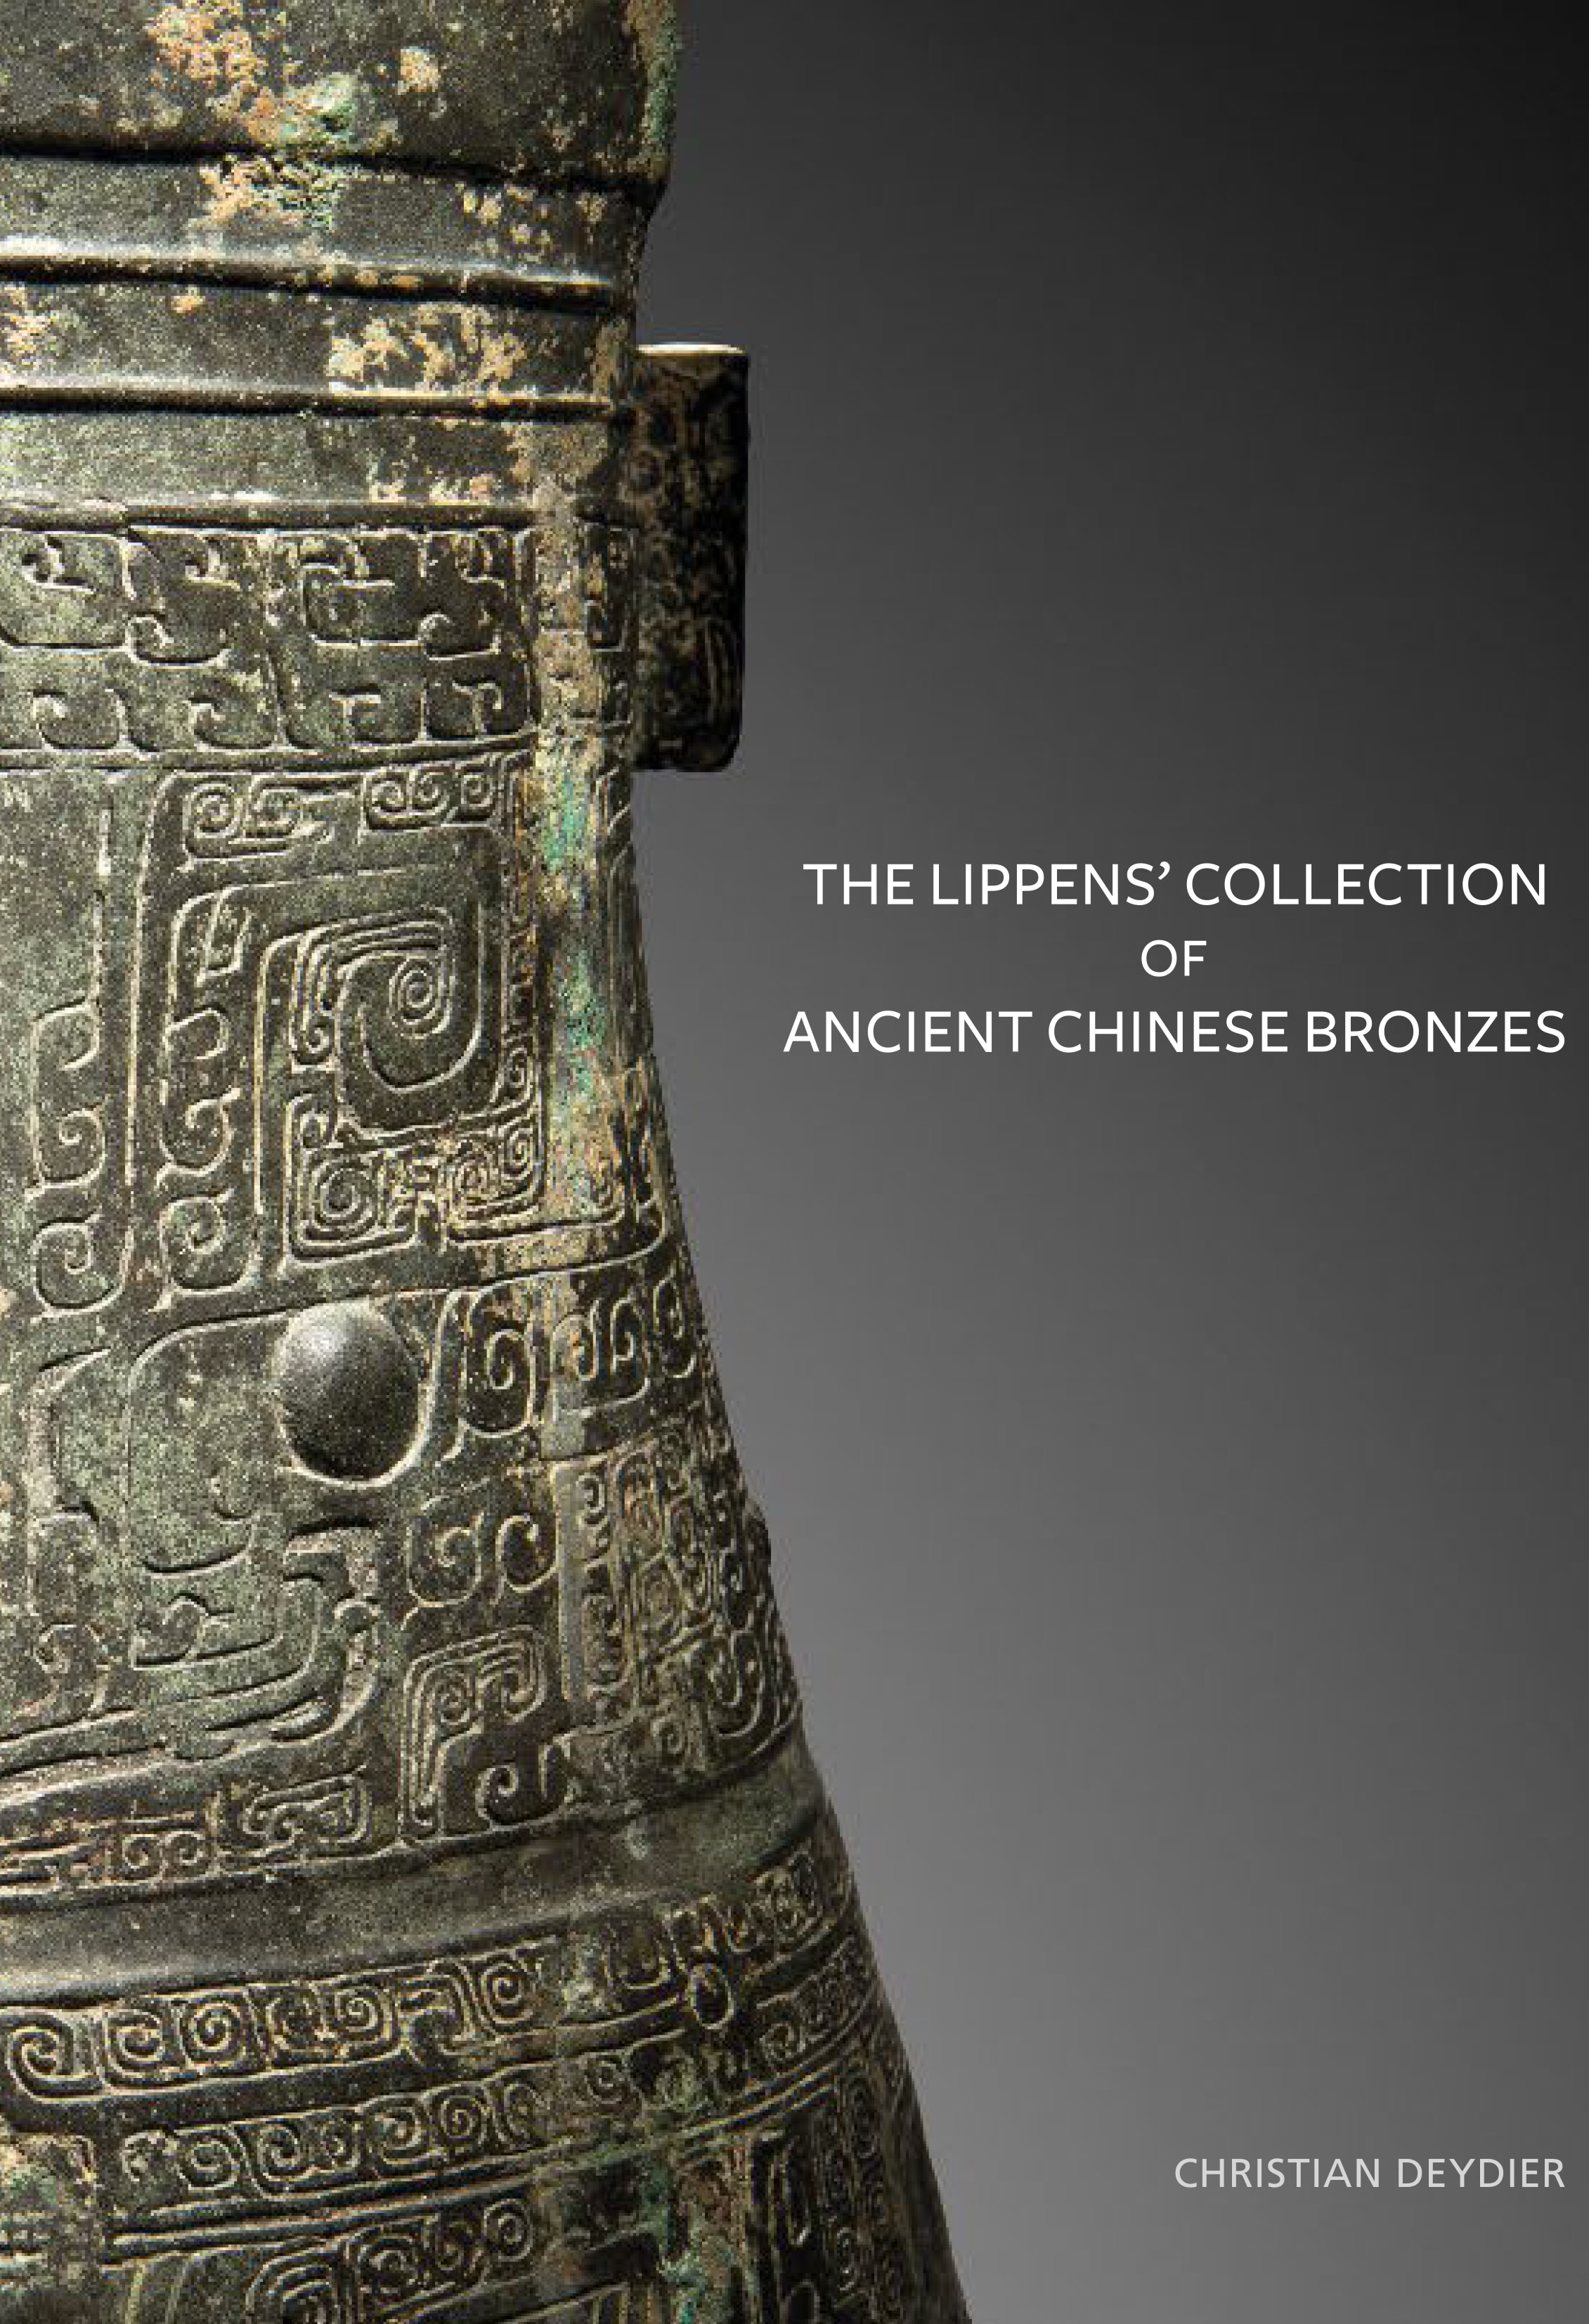 The Lippens Collection of Ancient Chinese Bronzes